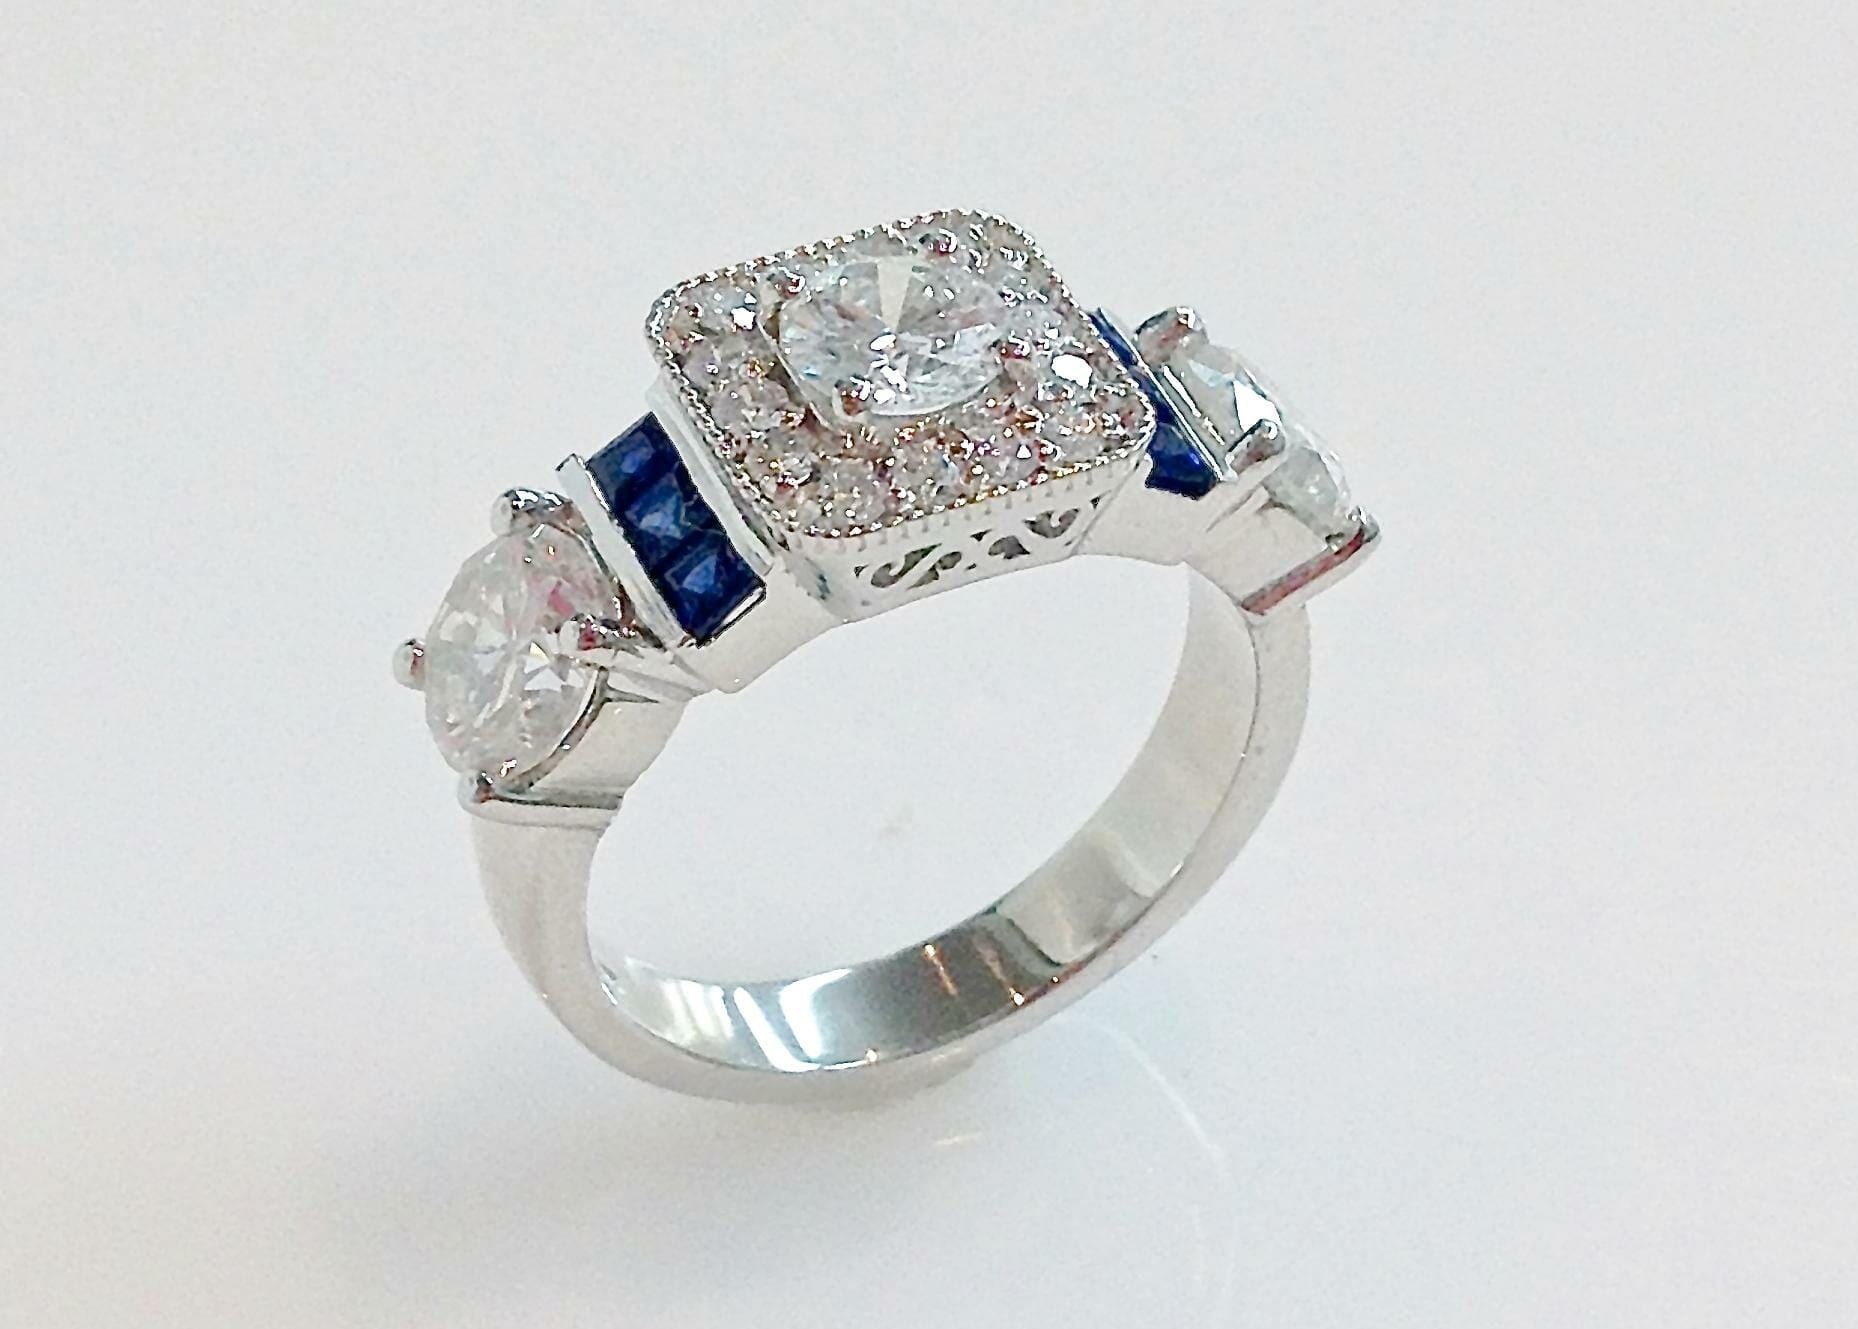 inspirations luxury rings wedding jewellry ring website best of beautiful us jewellery settings pics new types diamond